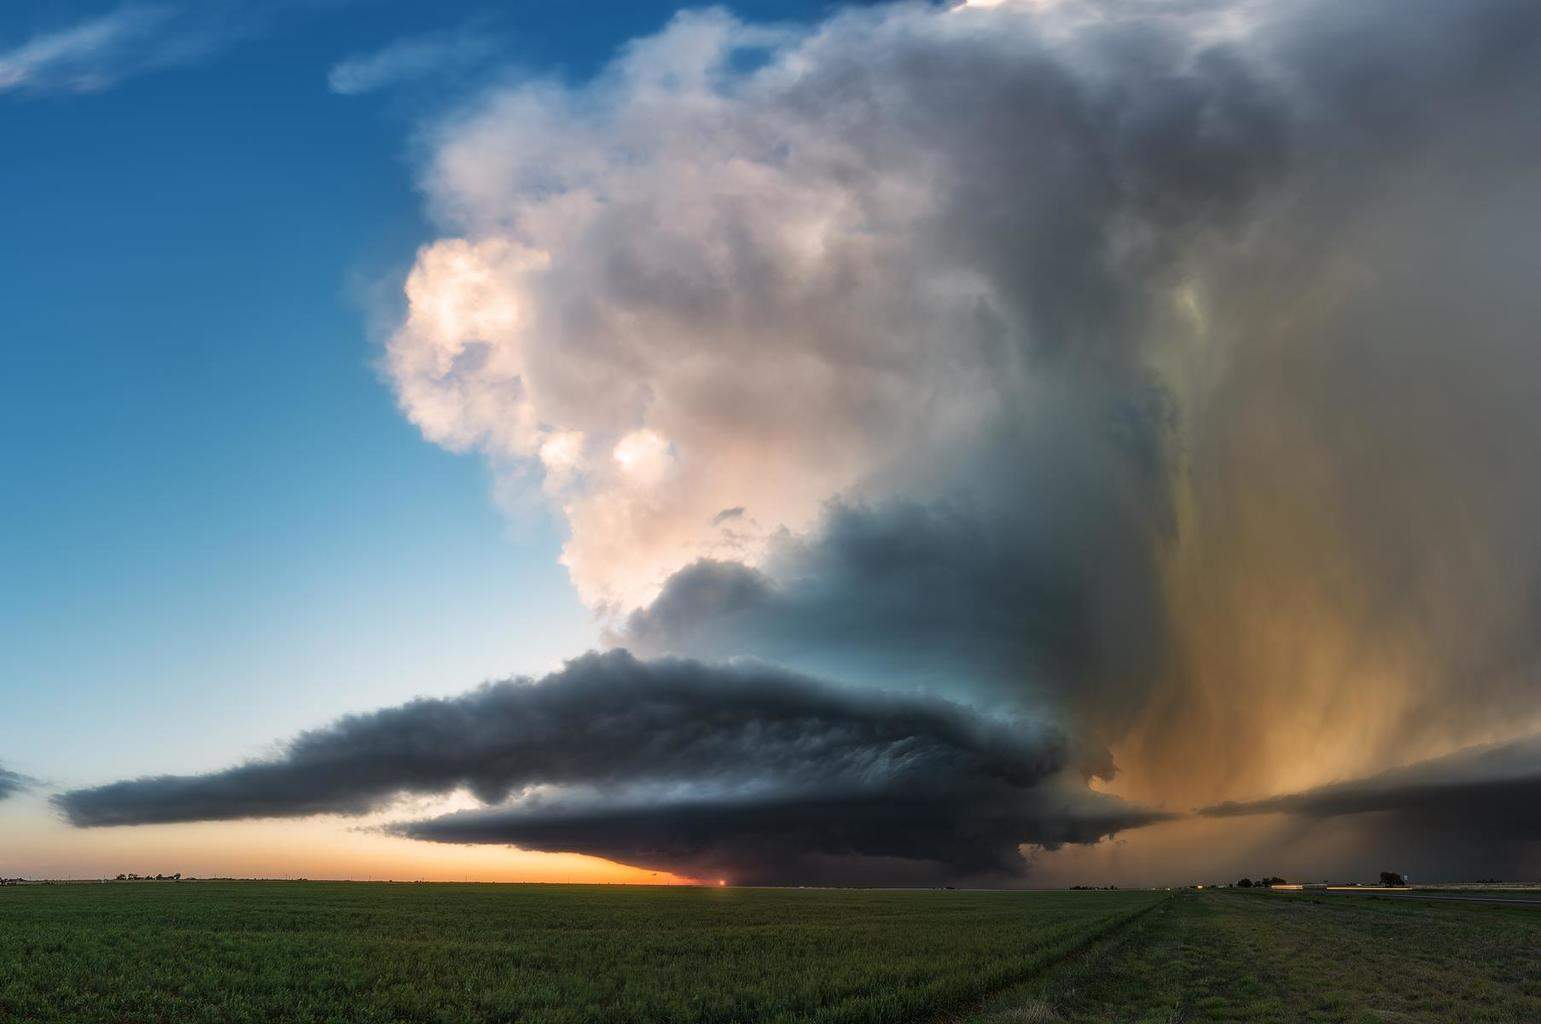 The reason I chase. Floydada, Texas tornadic supercell yesterday at sunset.